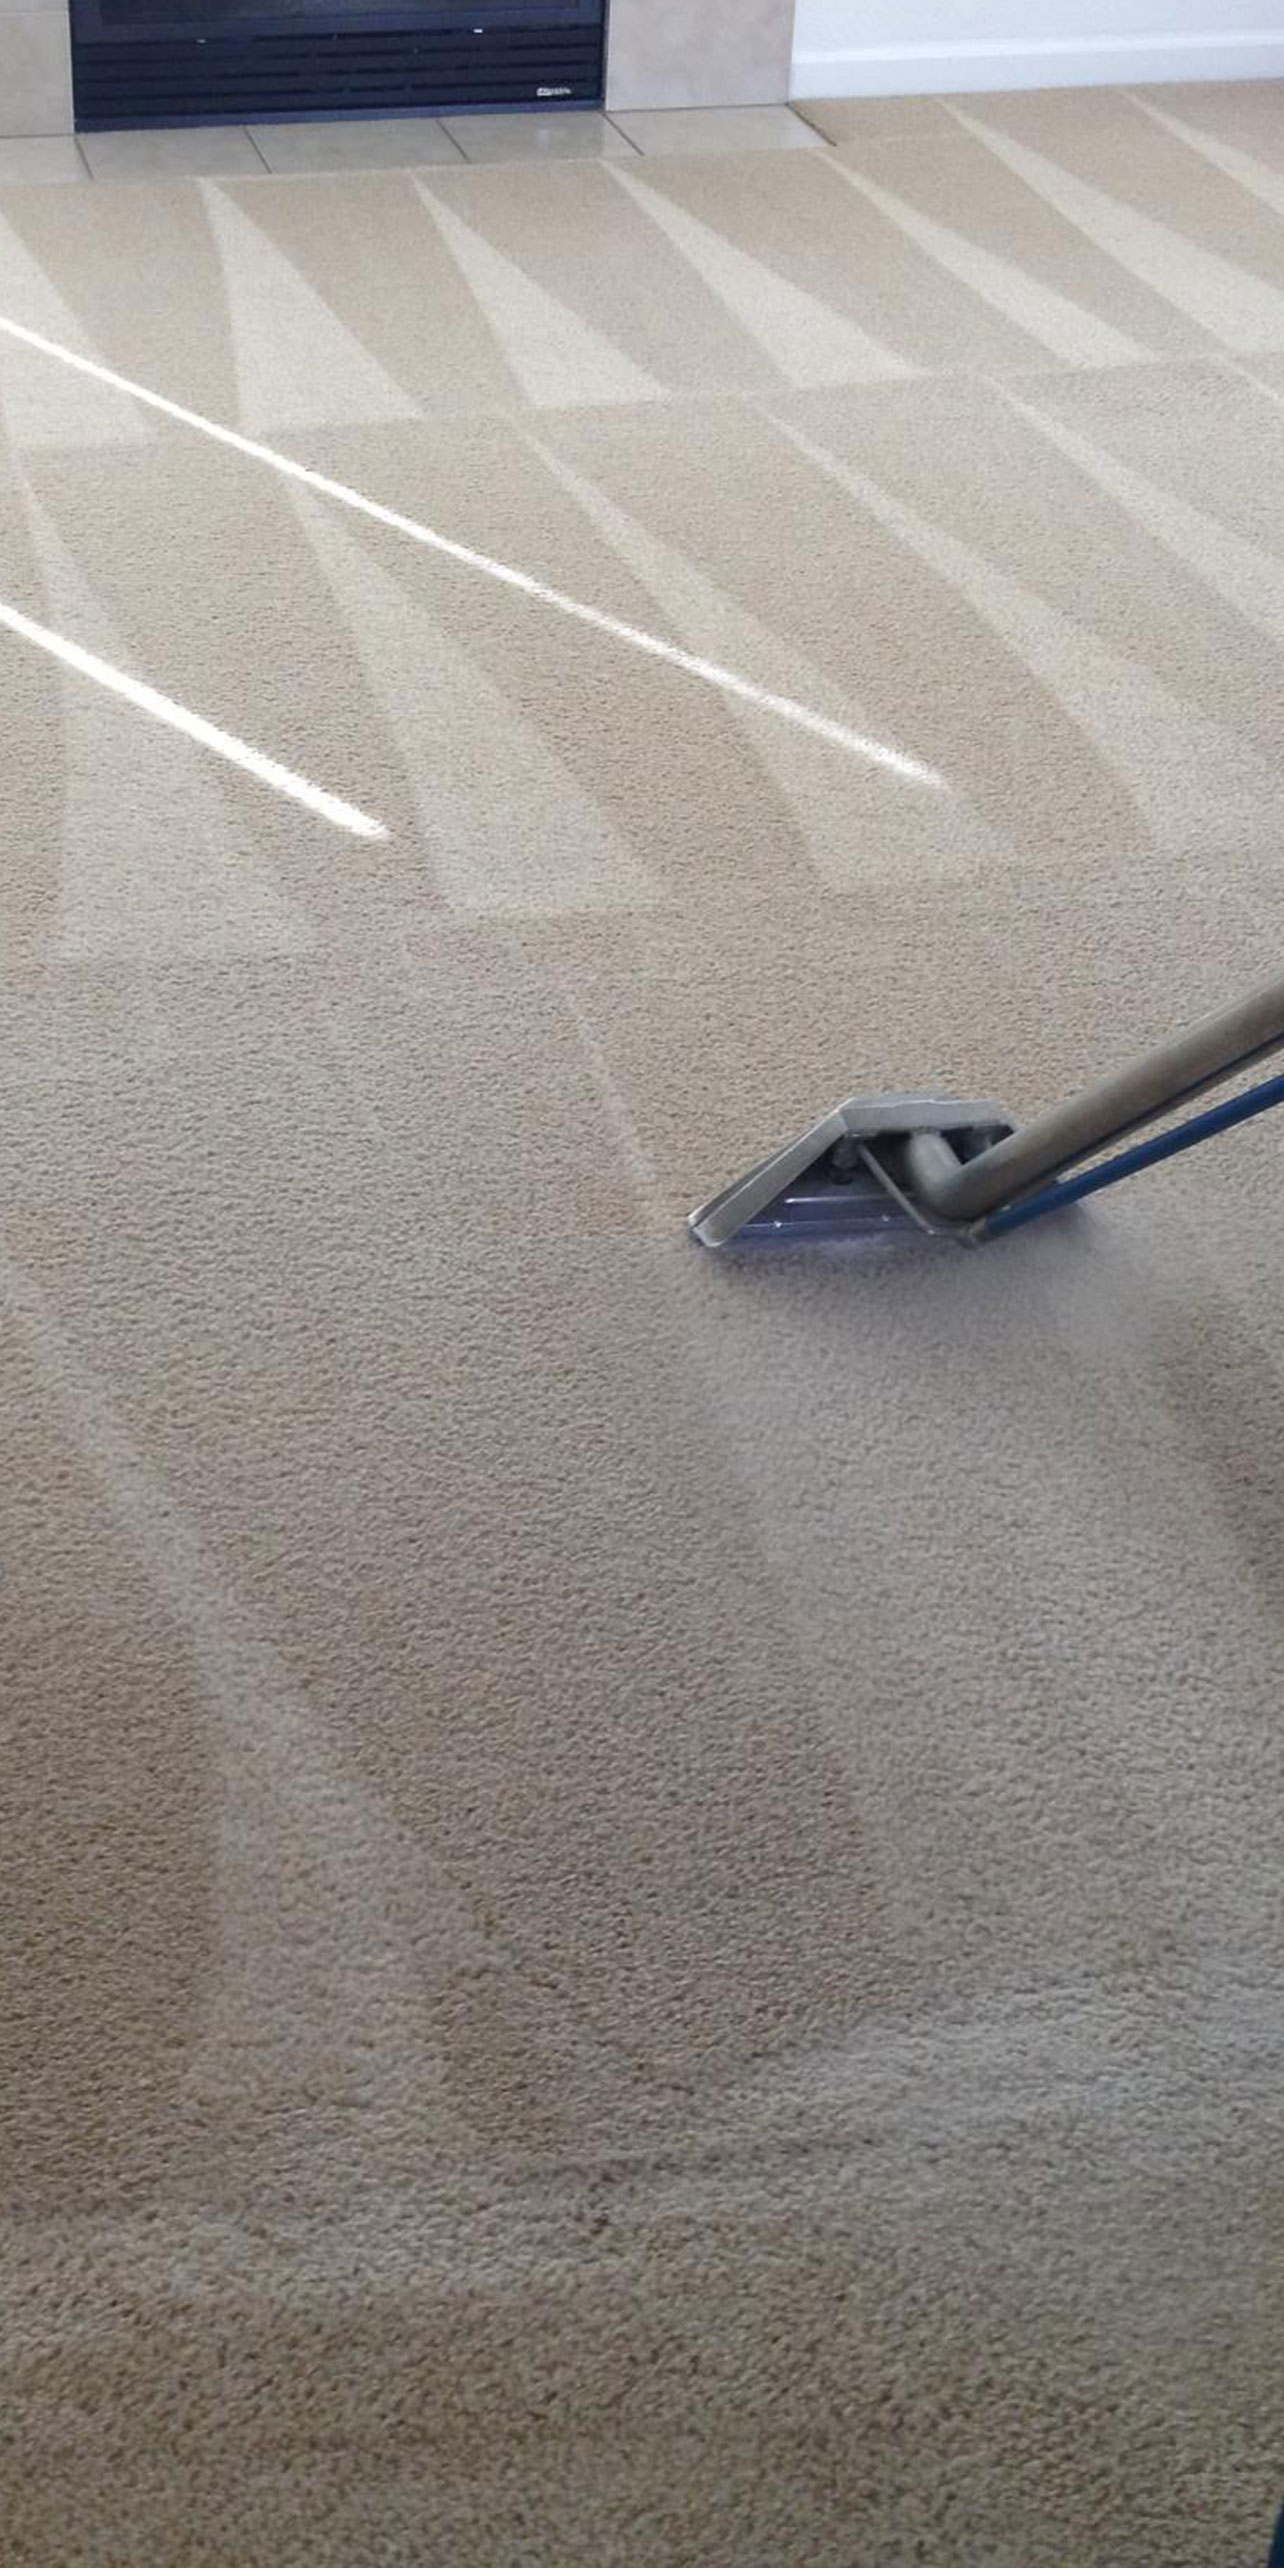 Home Merced Carpet Cleaning Upholstery Cleaning And Stain